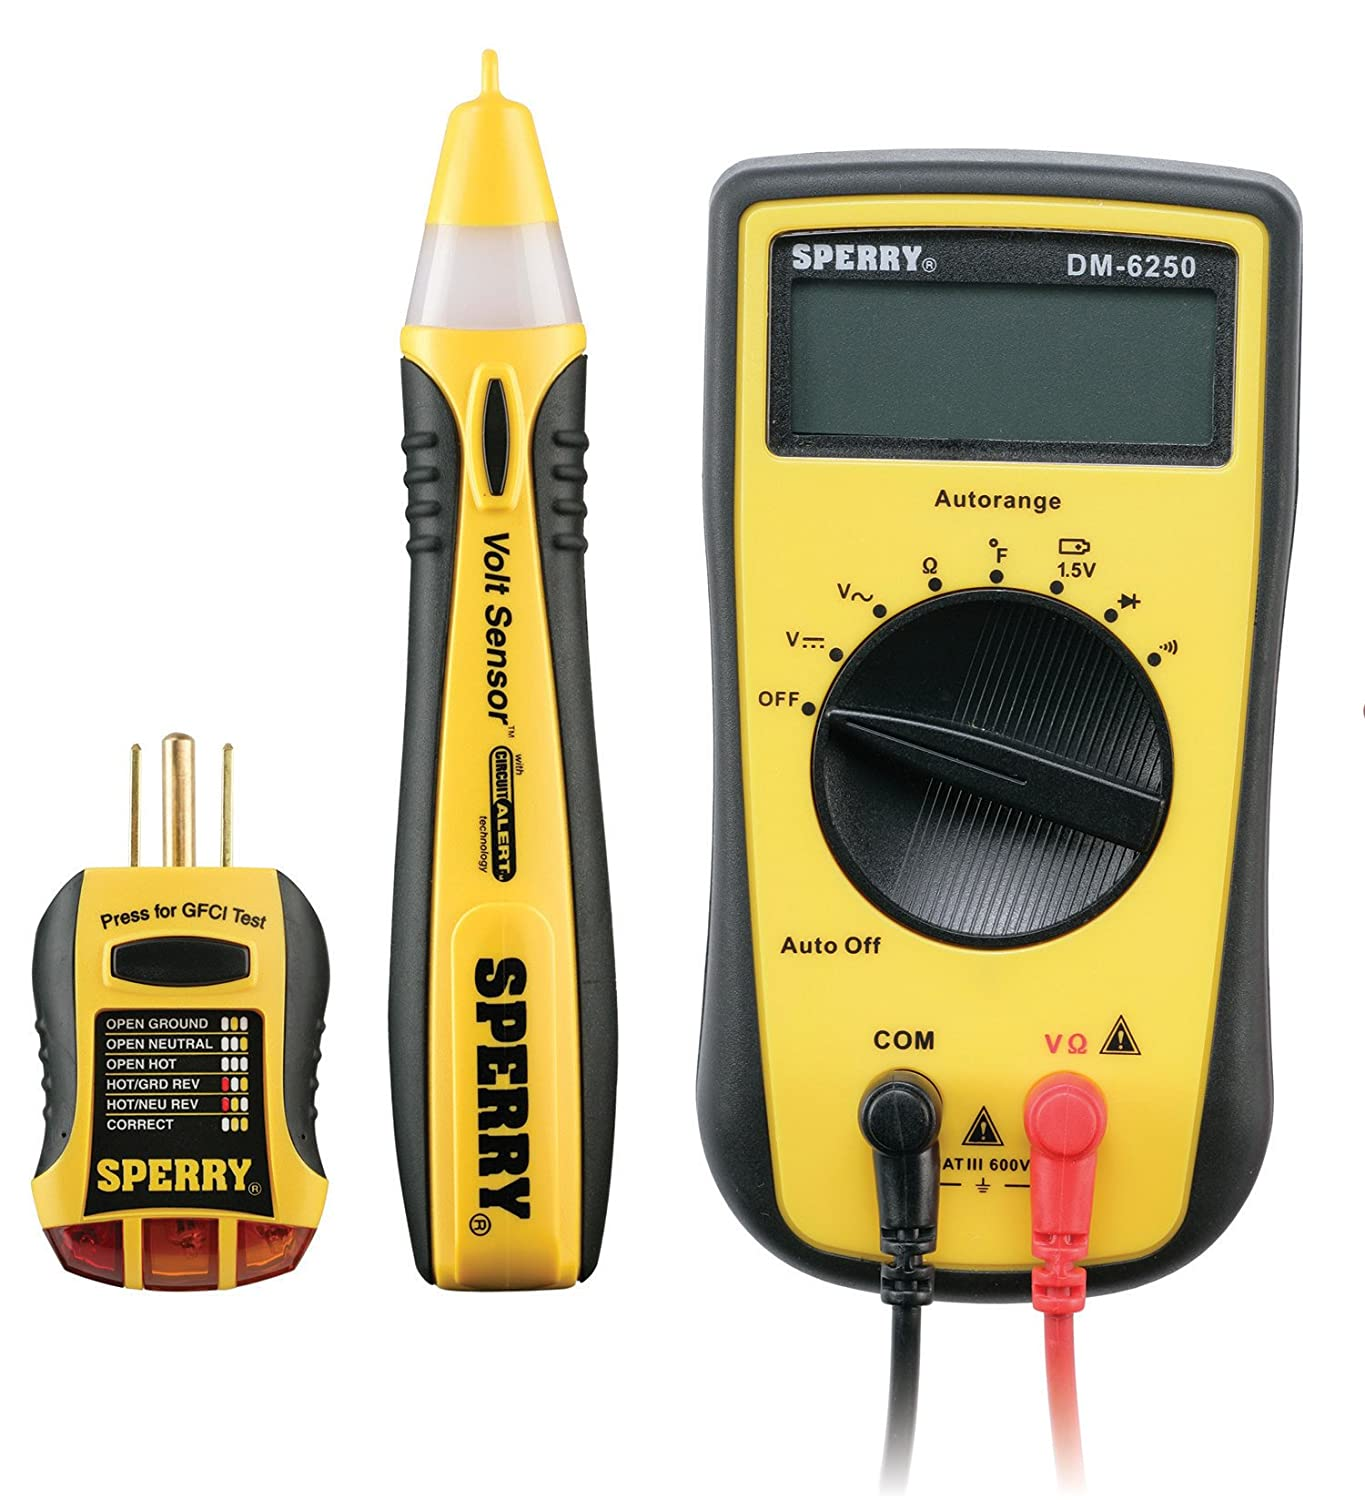 Sperry Instruments Gfi6302 Gfci Outlet Receptacle Tester Standard Wiring A 120v Ac Outlets 7 Visual Indication